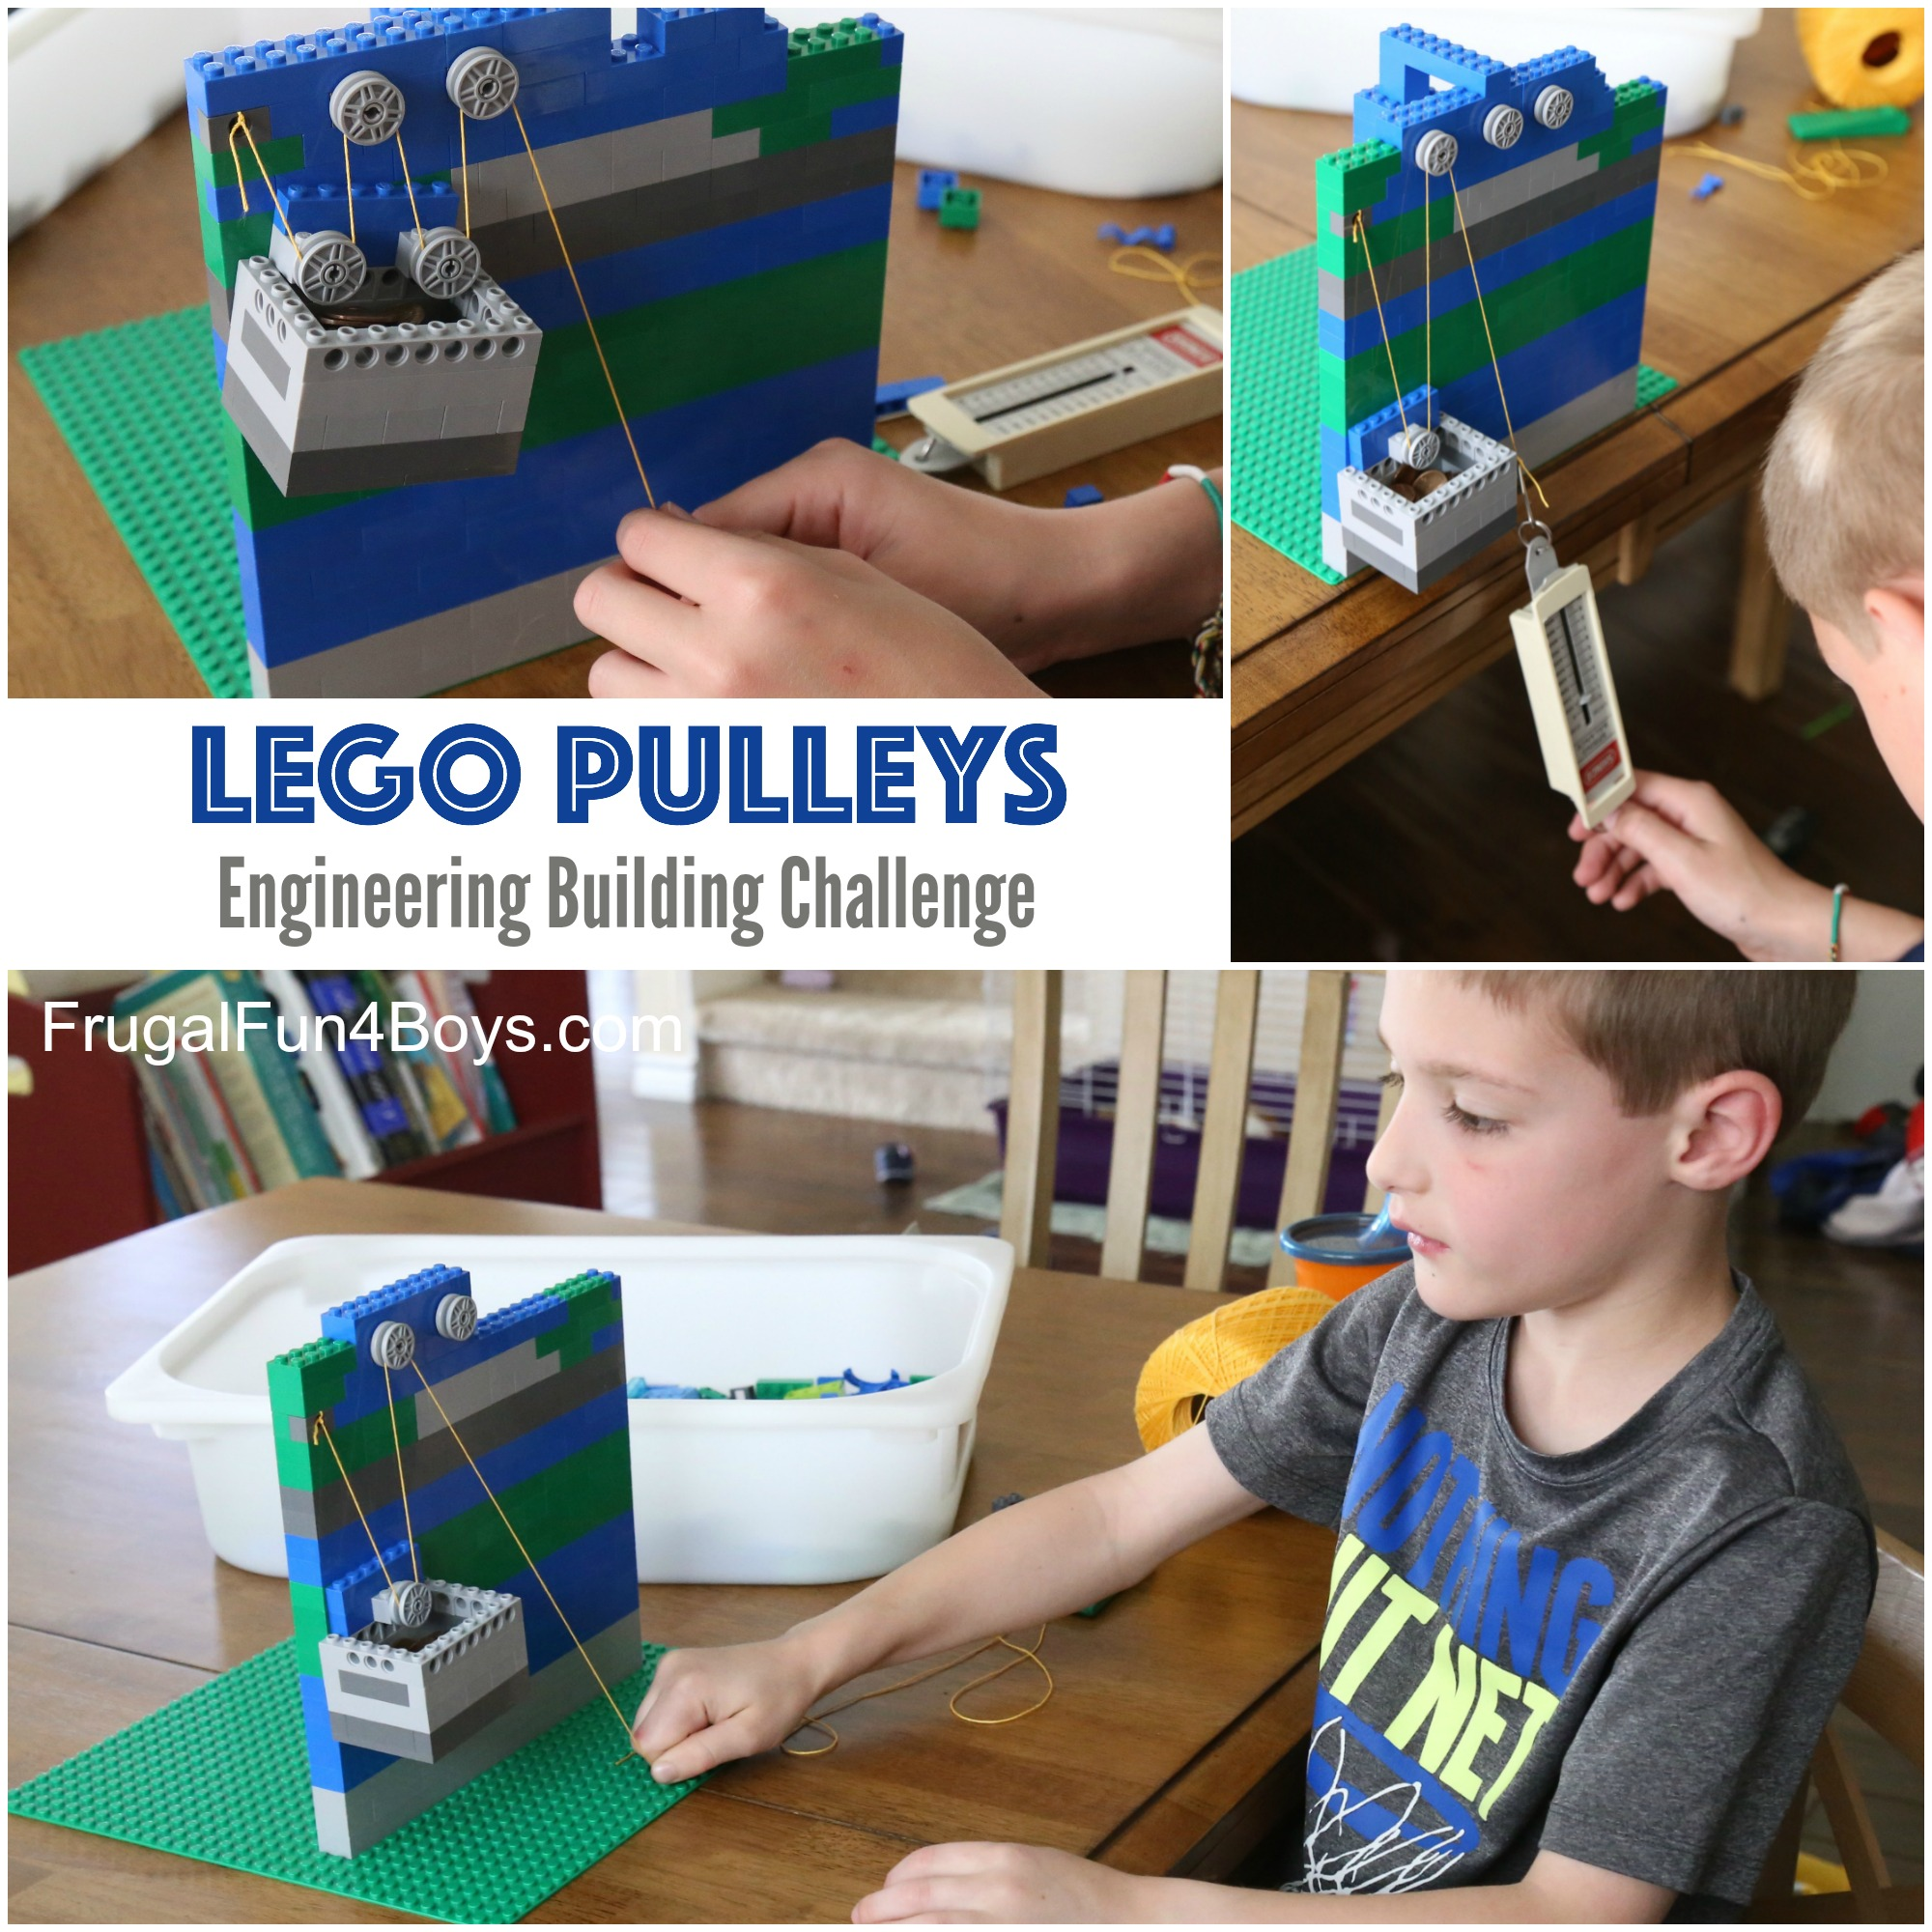 LEGO Pulleys: An Engineering Building Challenge!